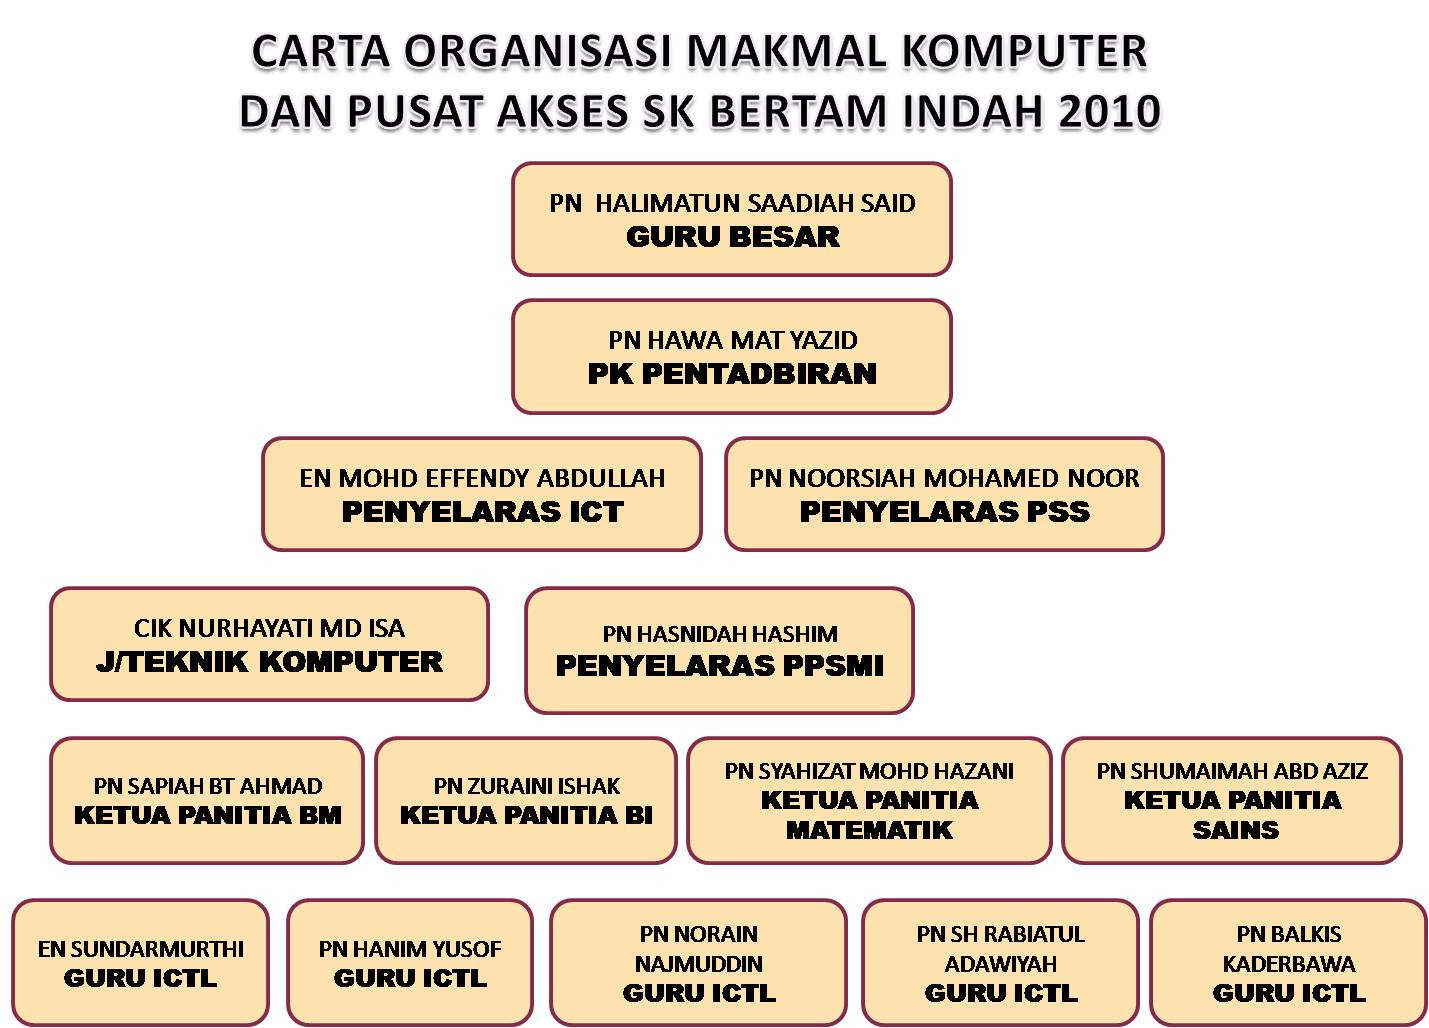 Komputer Ict Bertam Indah Official Website